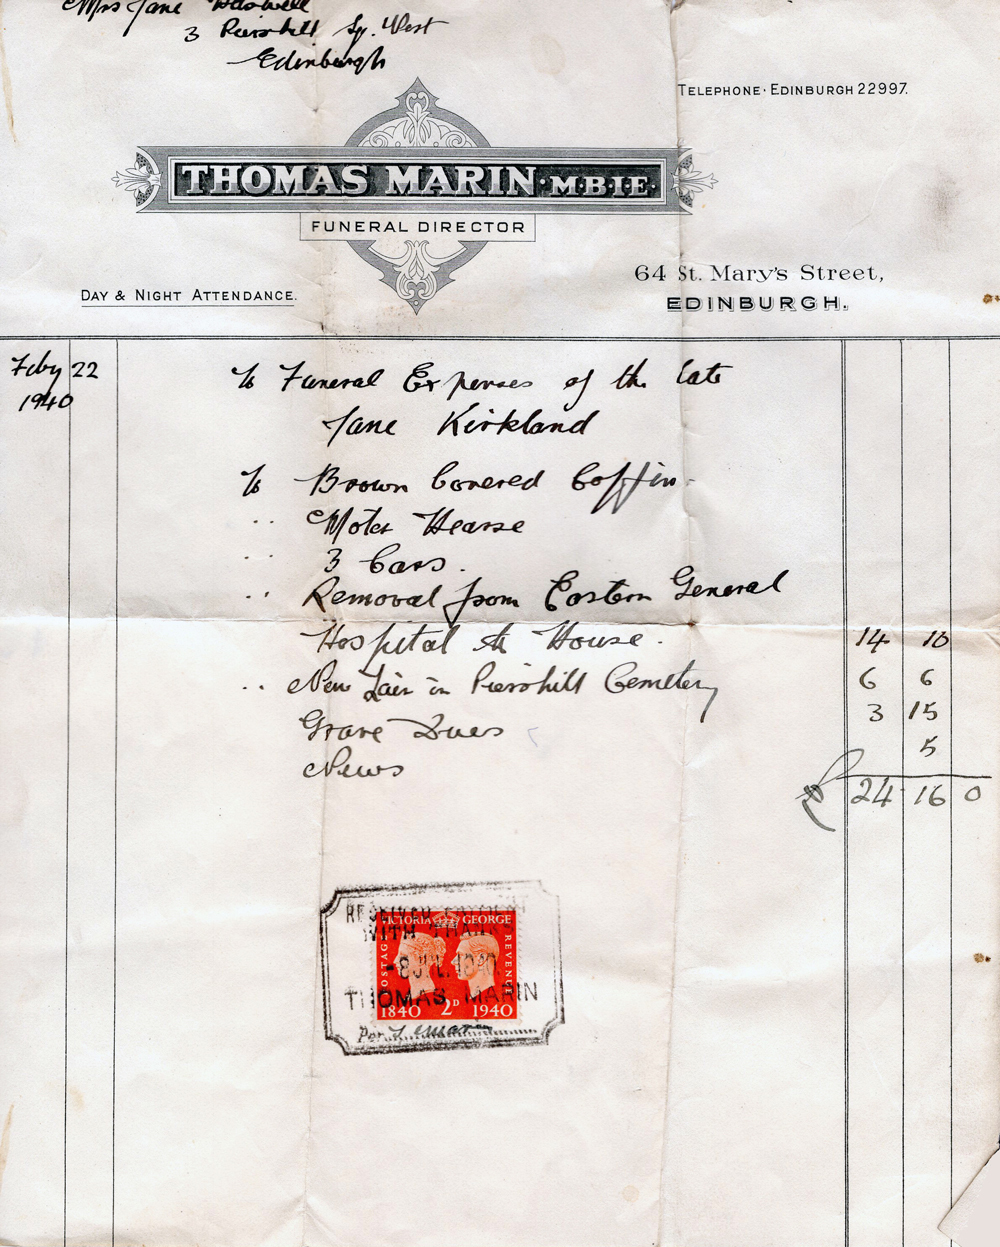 Invoice And Receipt For Funeral Expenses 1940